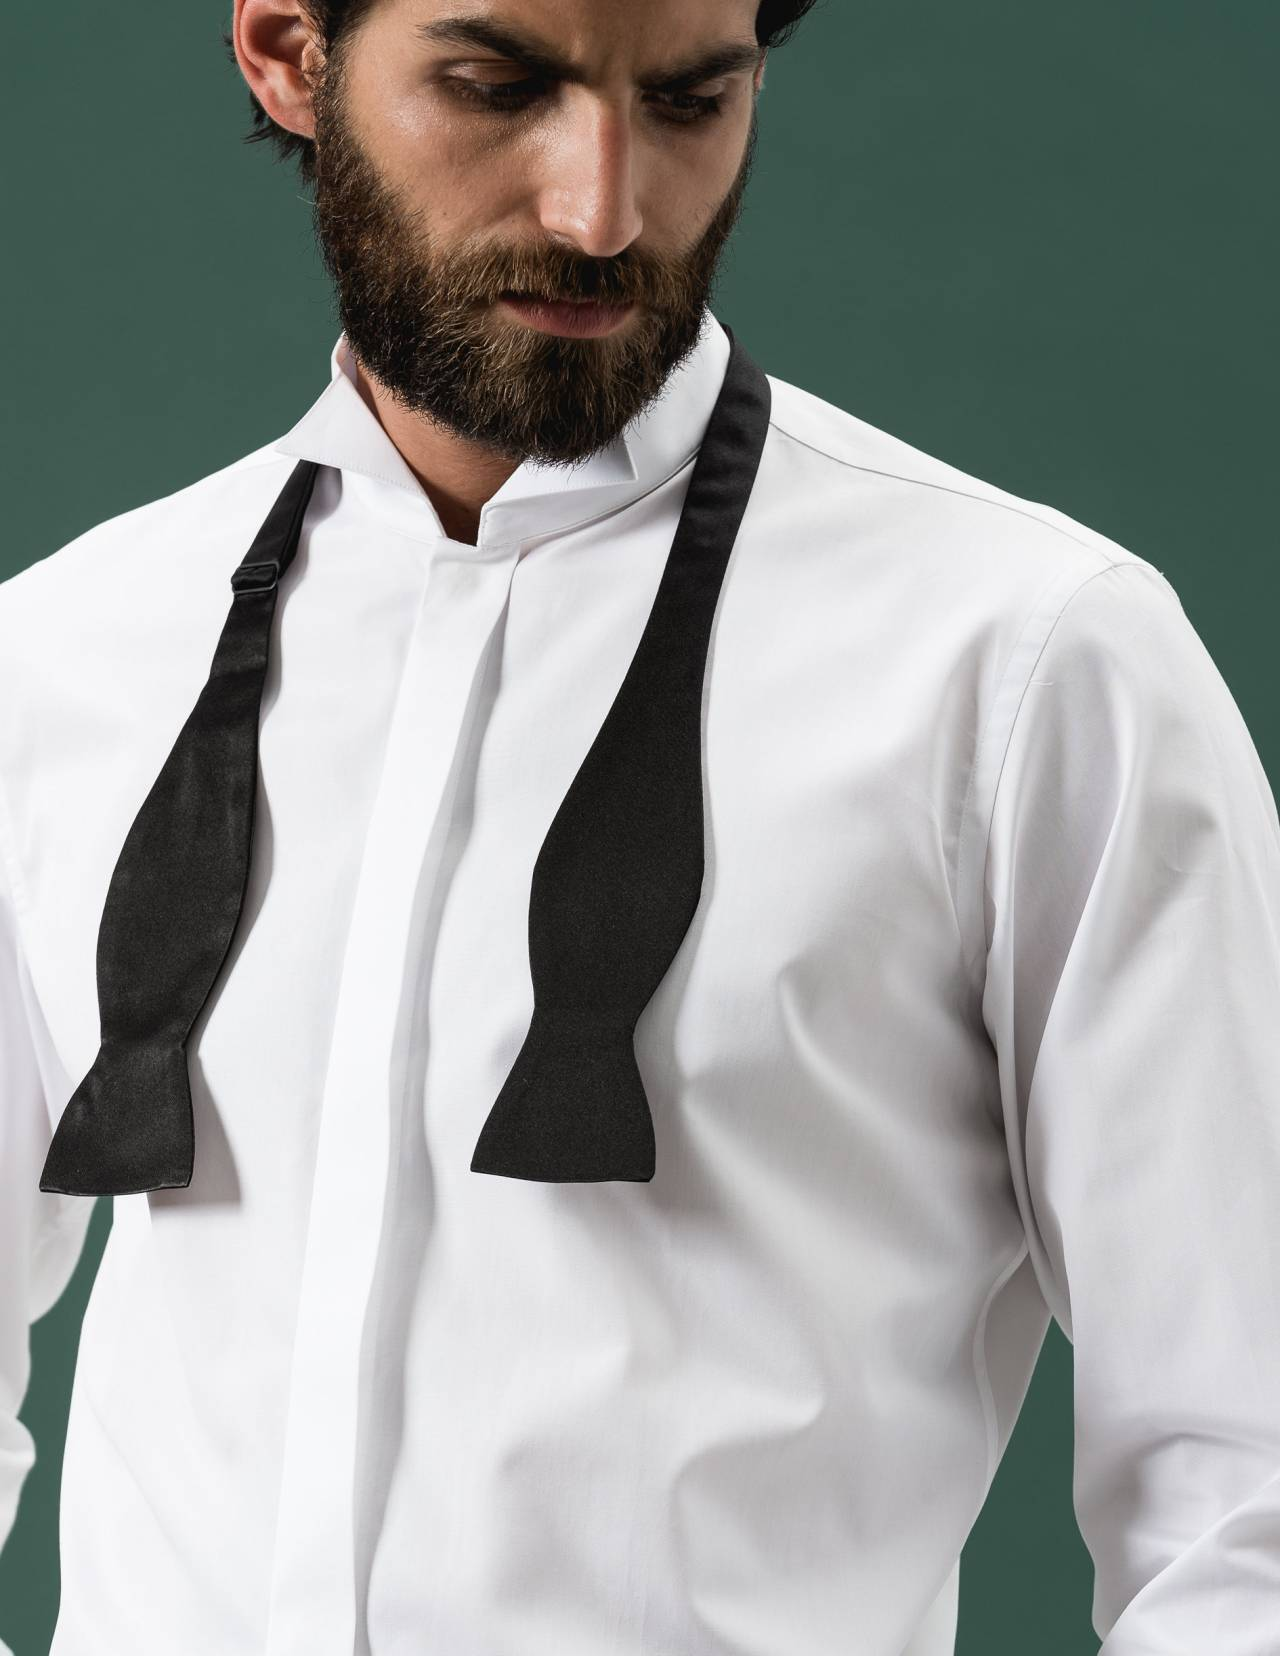 chemise-homme-ajustee-casse-blanc-uni-figaret-detail-an7178910039.jpg